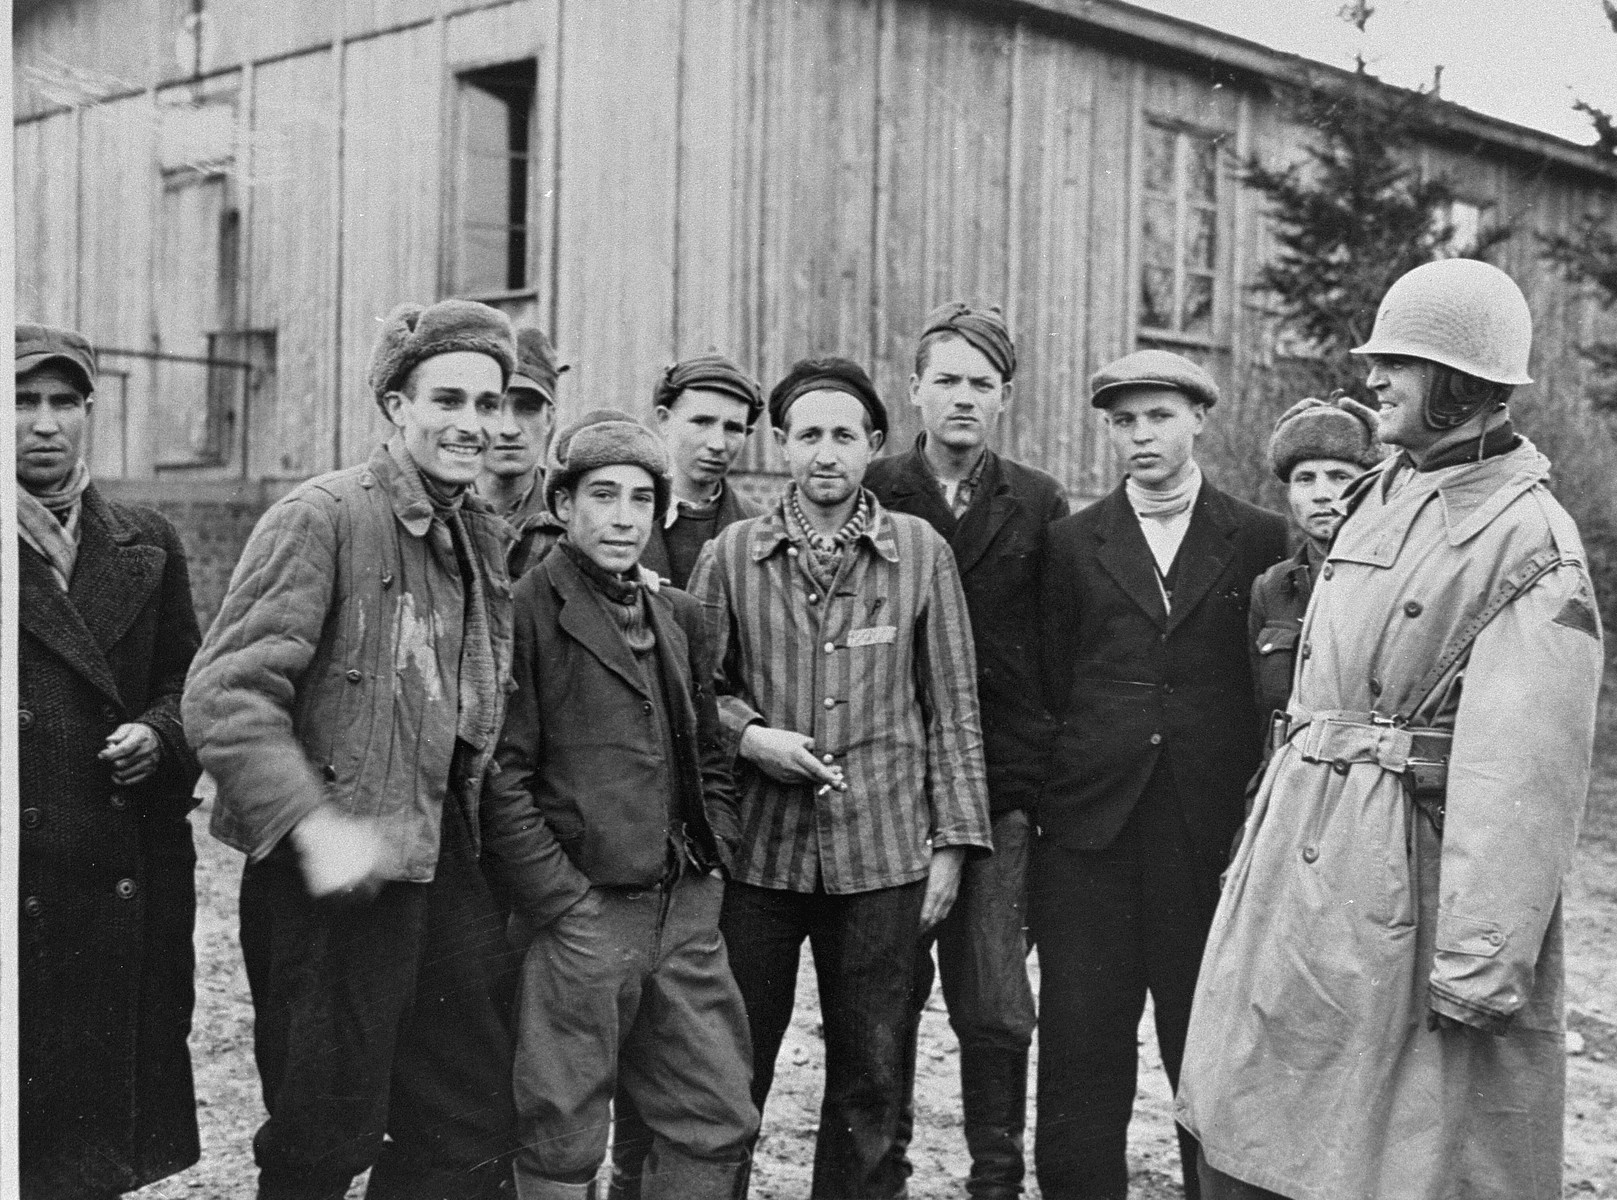 why did germans document horrors committed in concentration camps